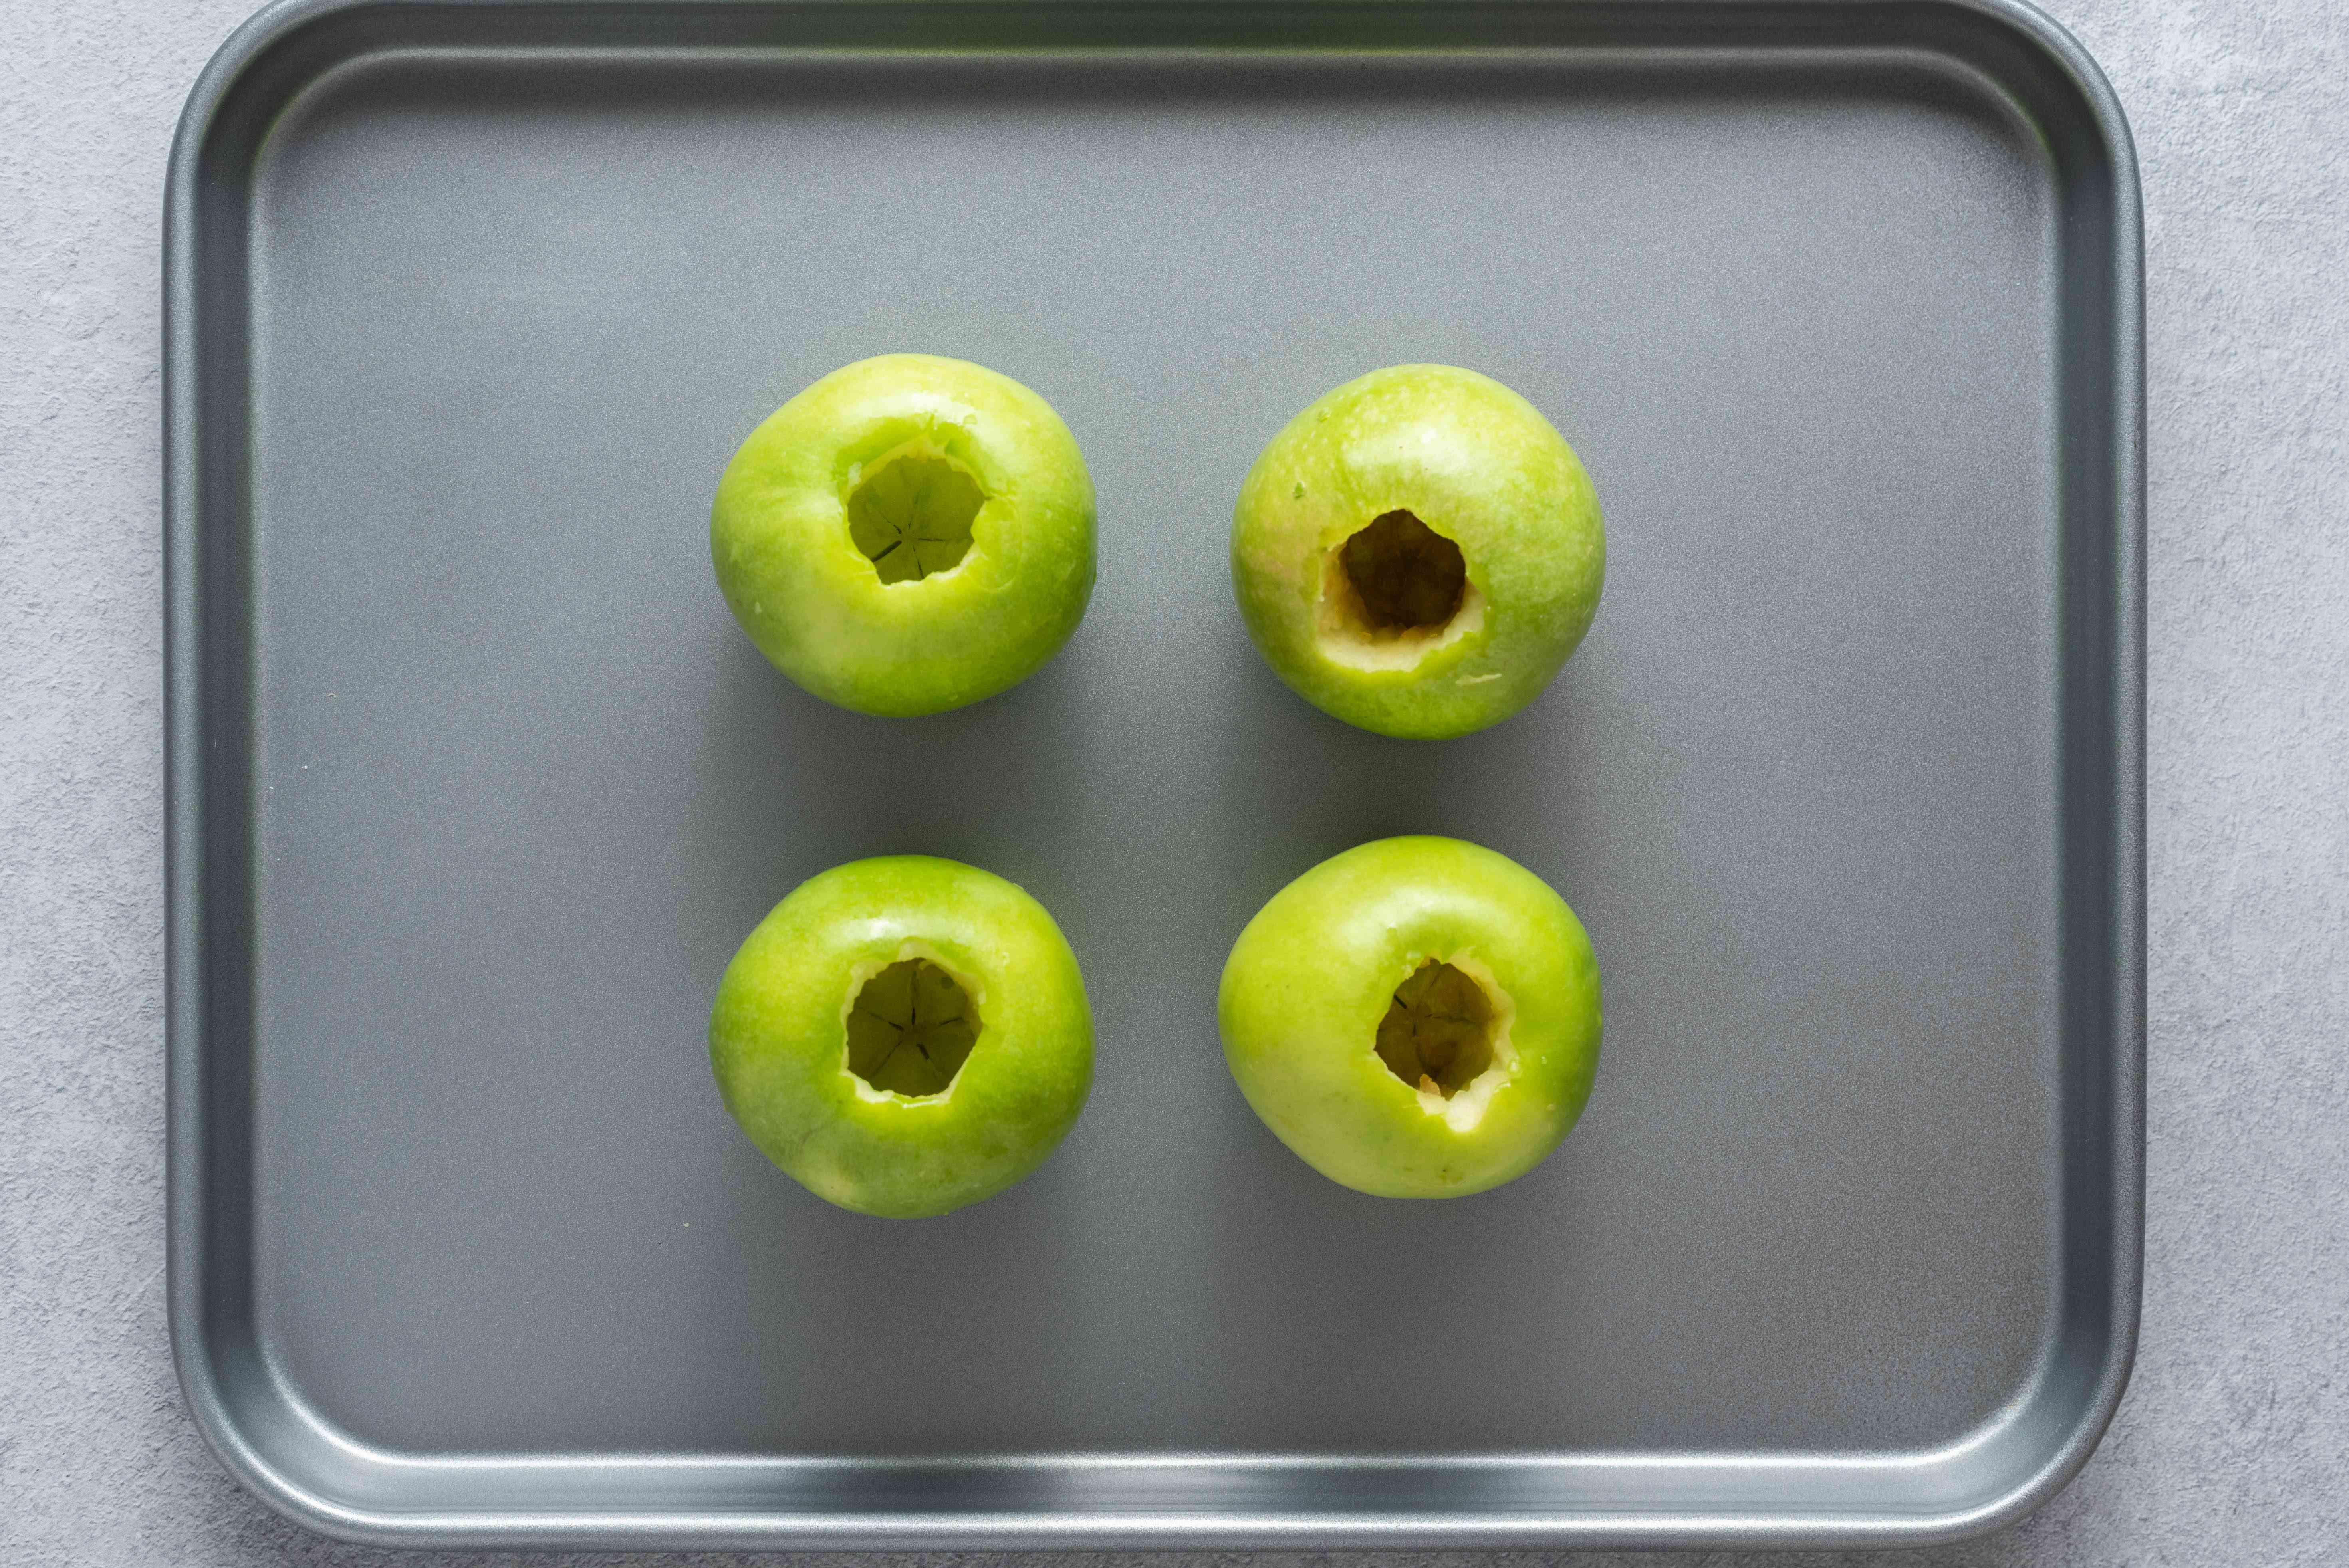 Stand the apple up on a baking sheet with the cored portion up